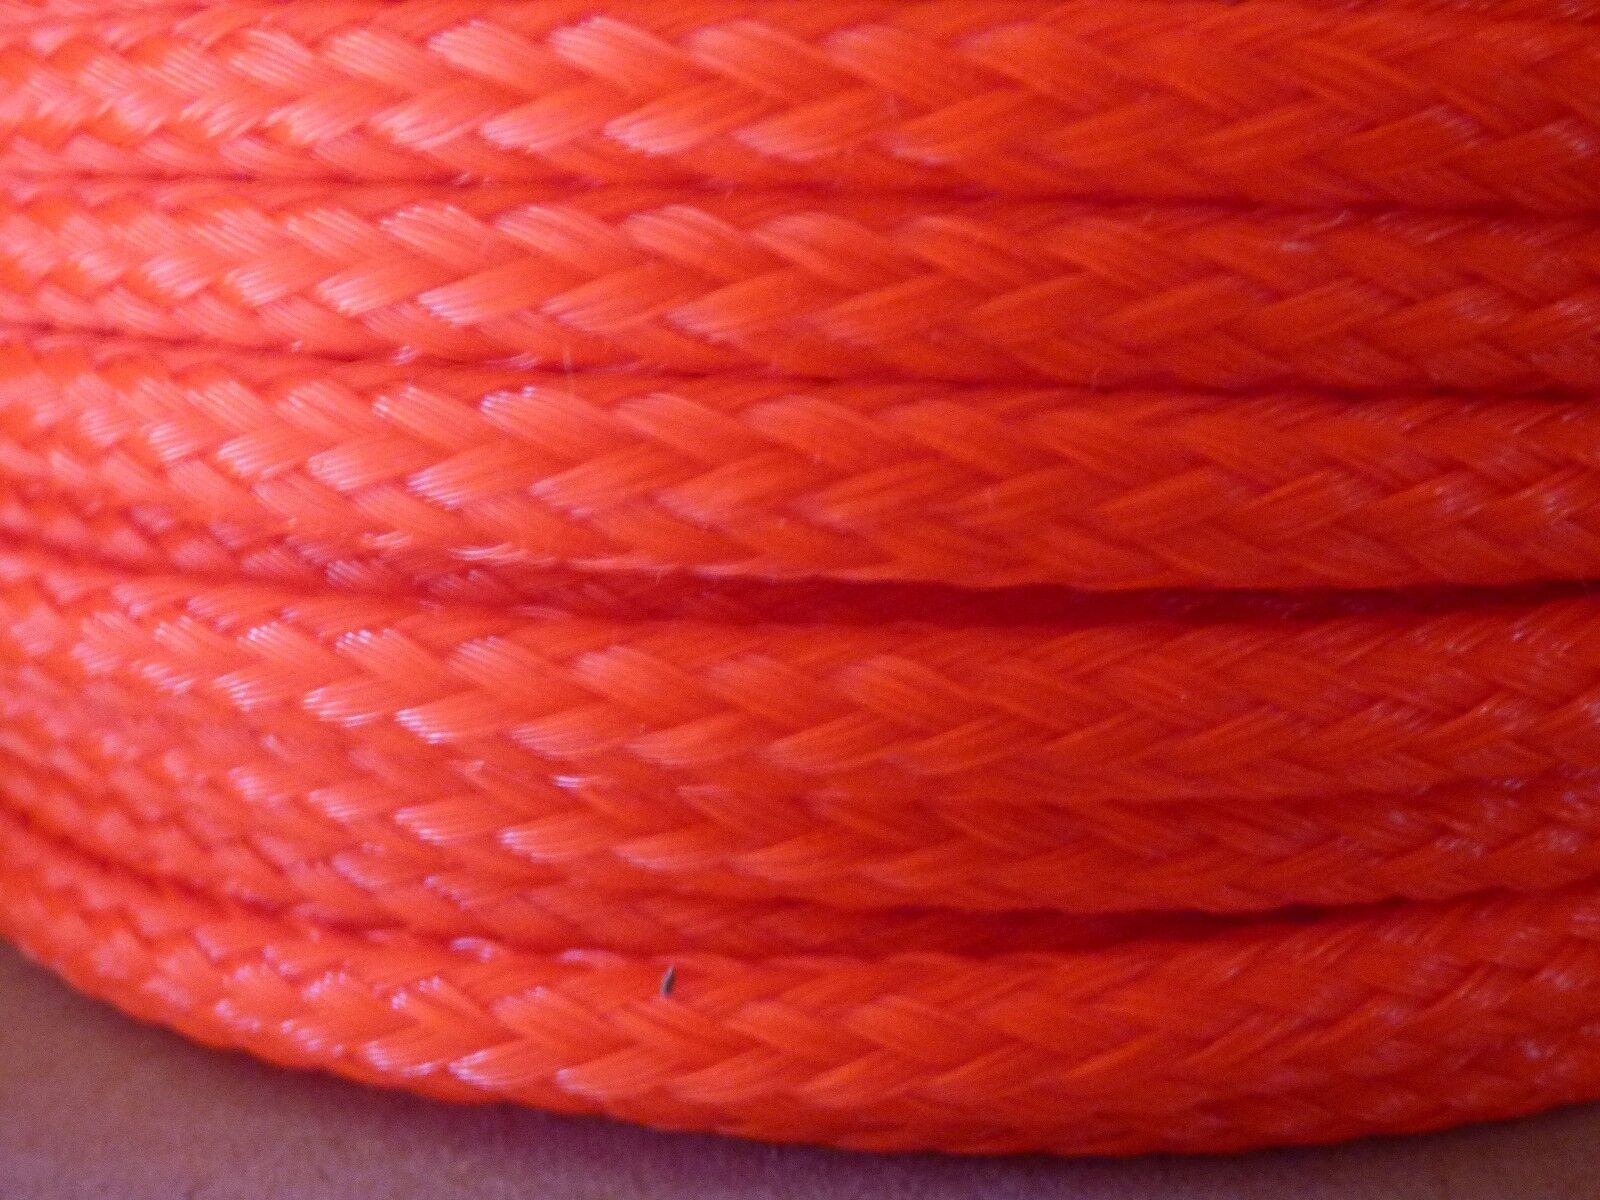 6mm x 600 ft.(2 lengths)Hollow Braid Polyethylene Rope. Neon orange.Made in USA.